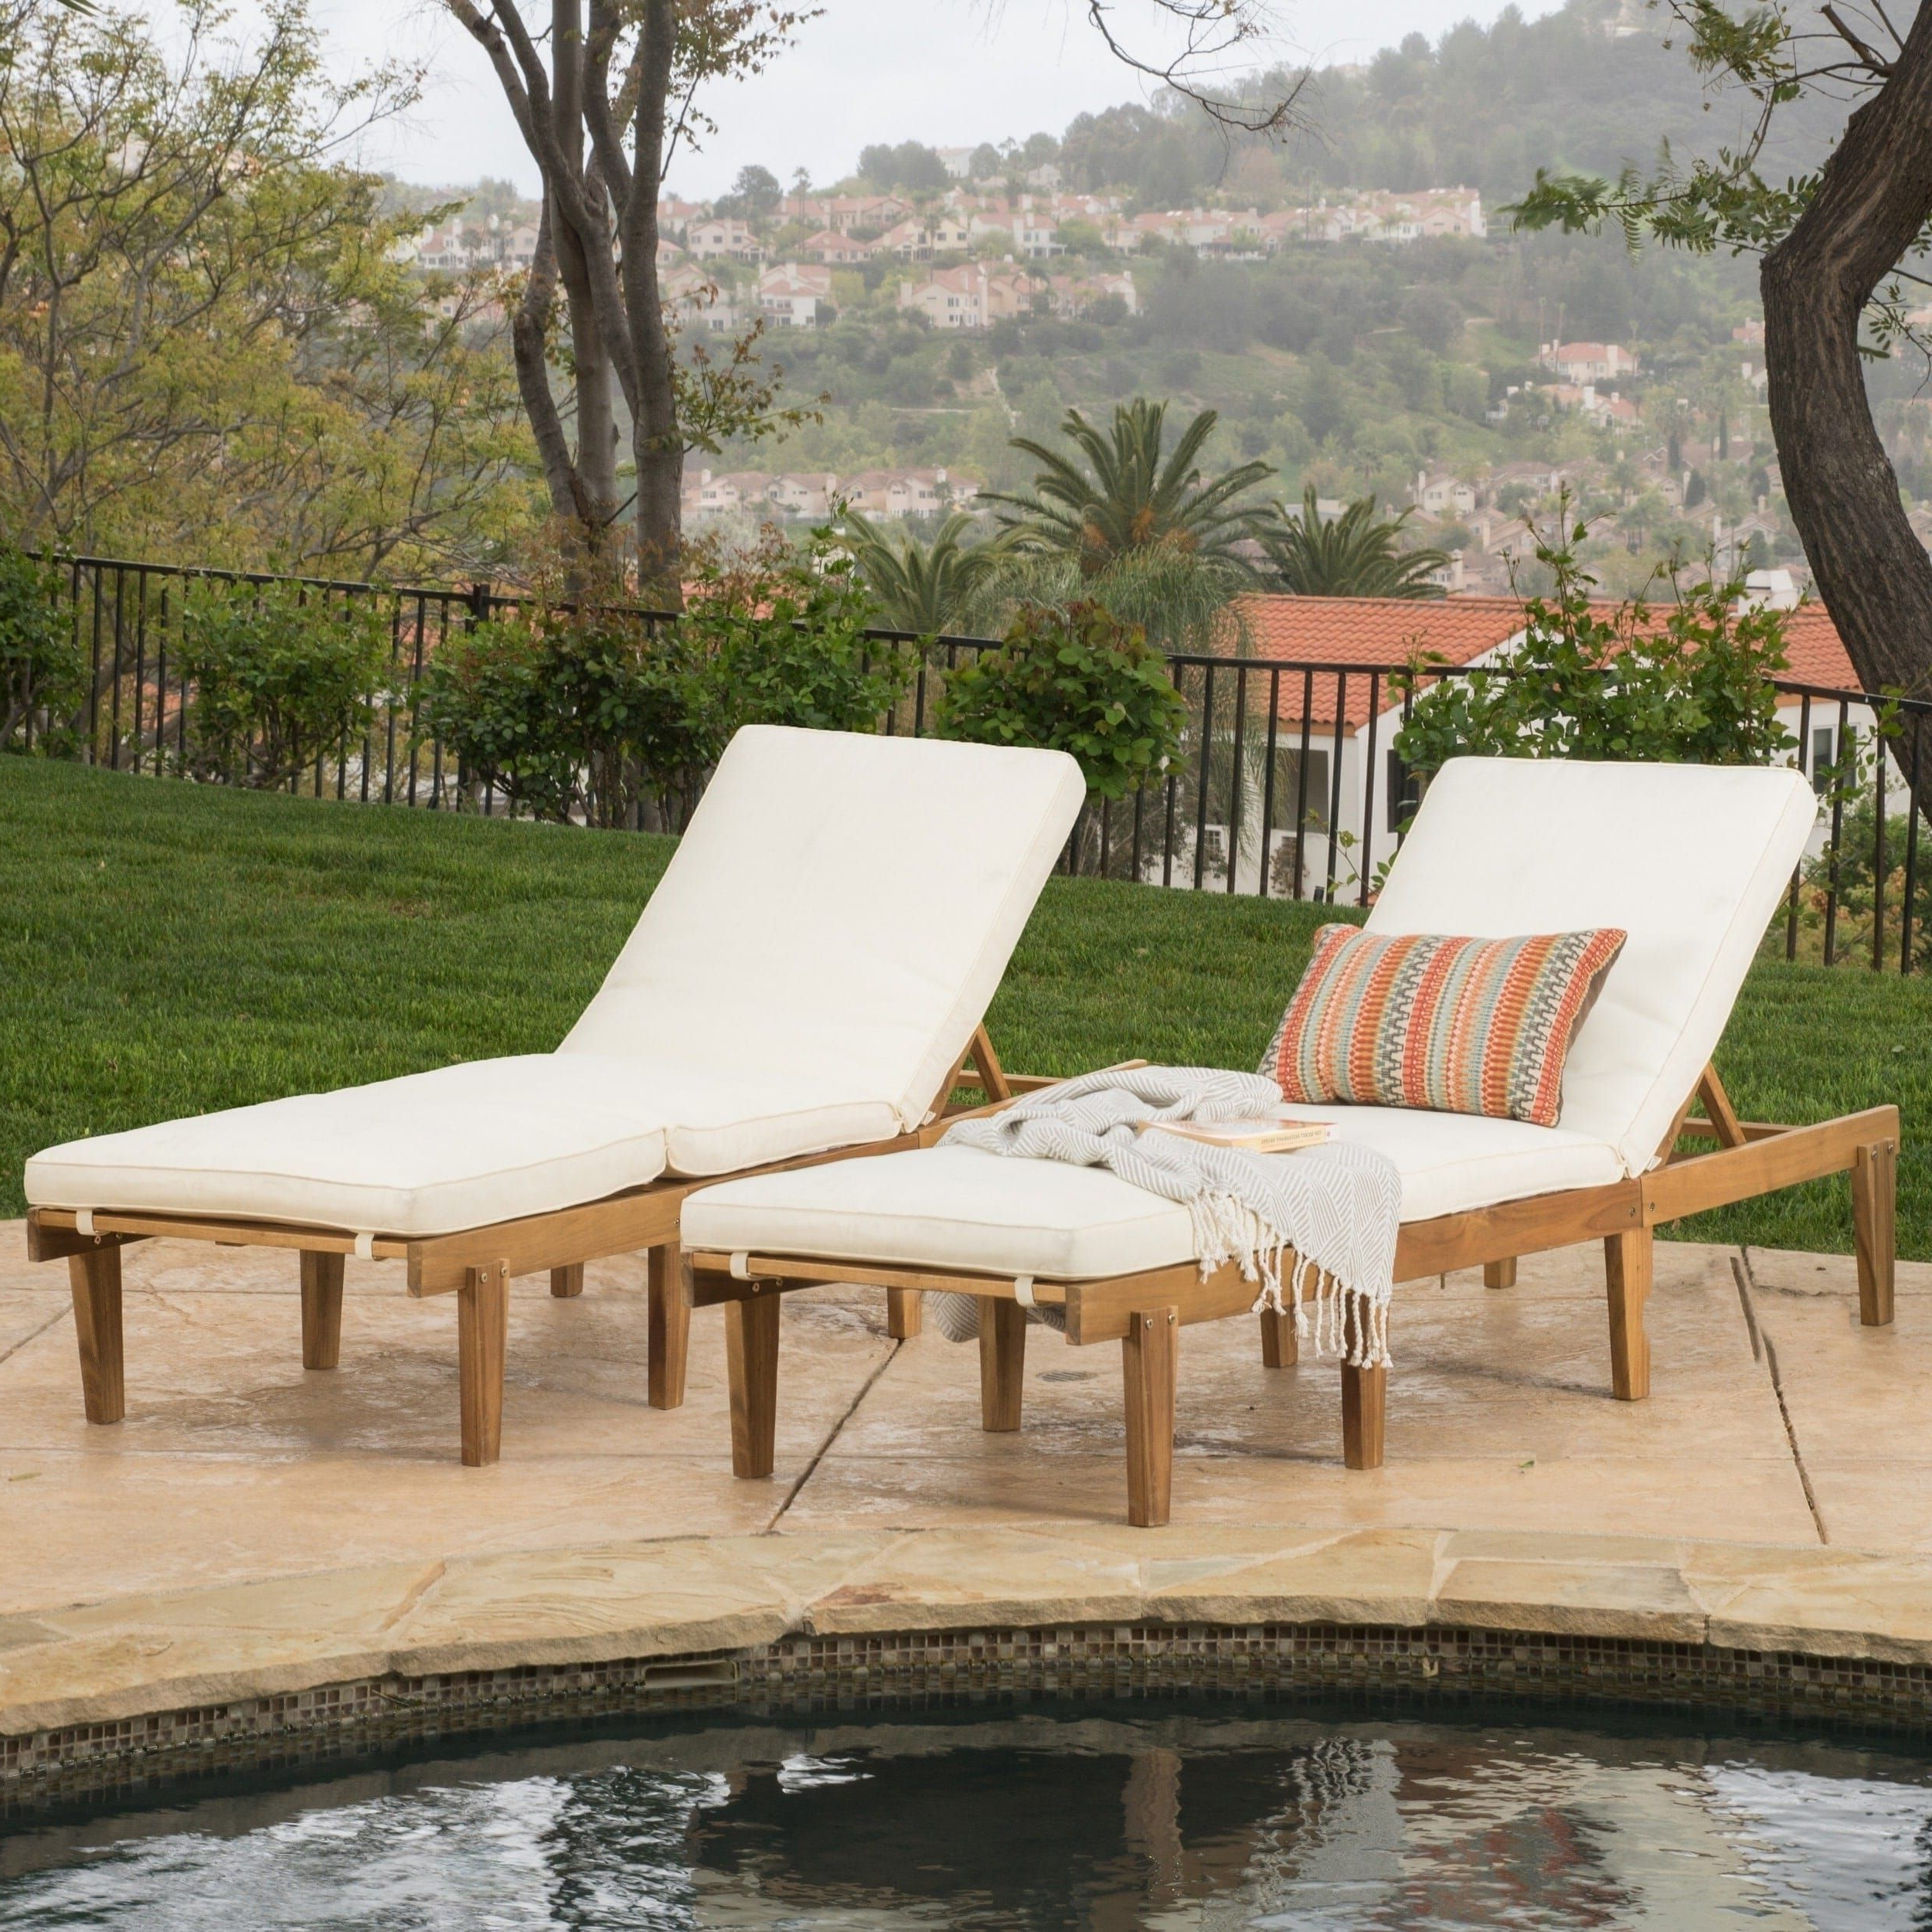 Outdoor Acacia Wood Chaise Lounges With Cushion With Current Ariana Outdoor Acacia Wood Chaise Lounge With Cushion (set (View 23 of 25)